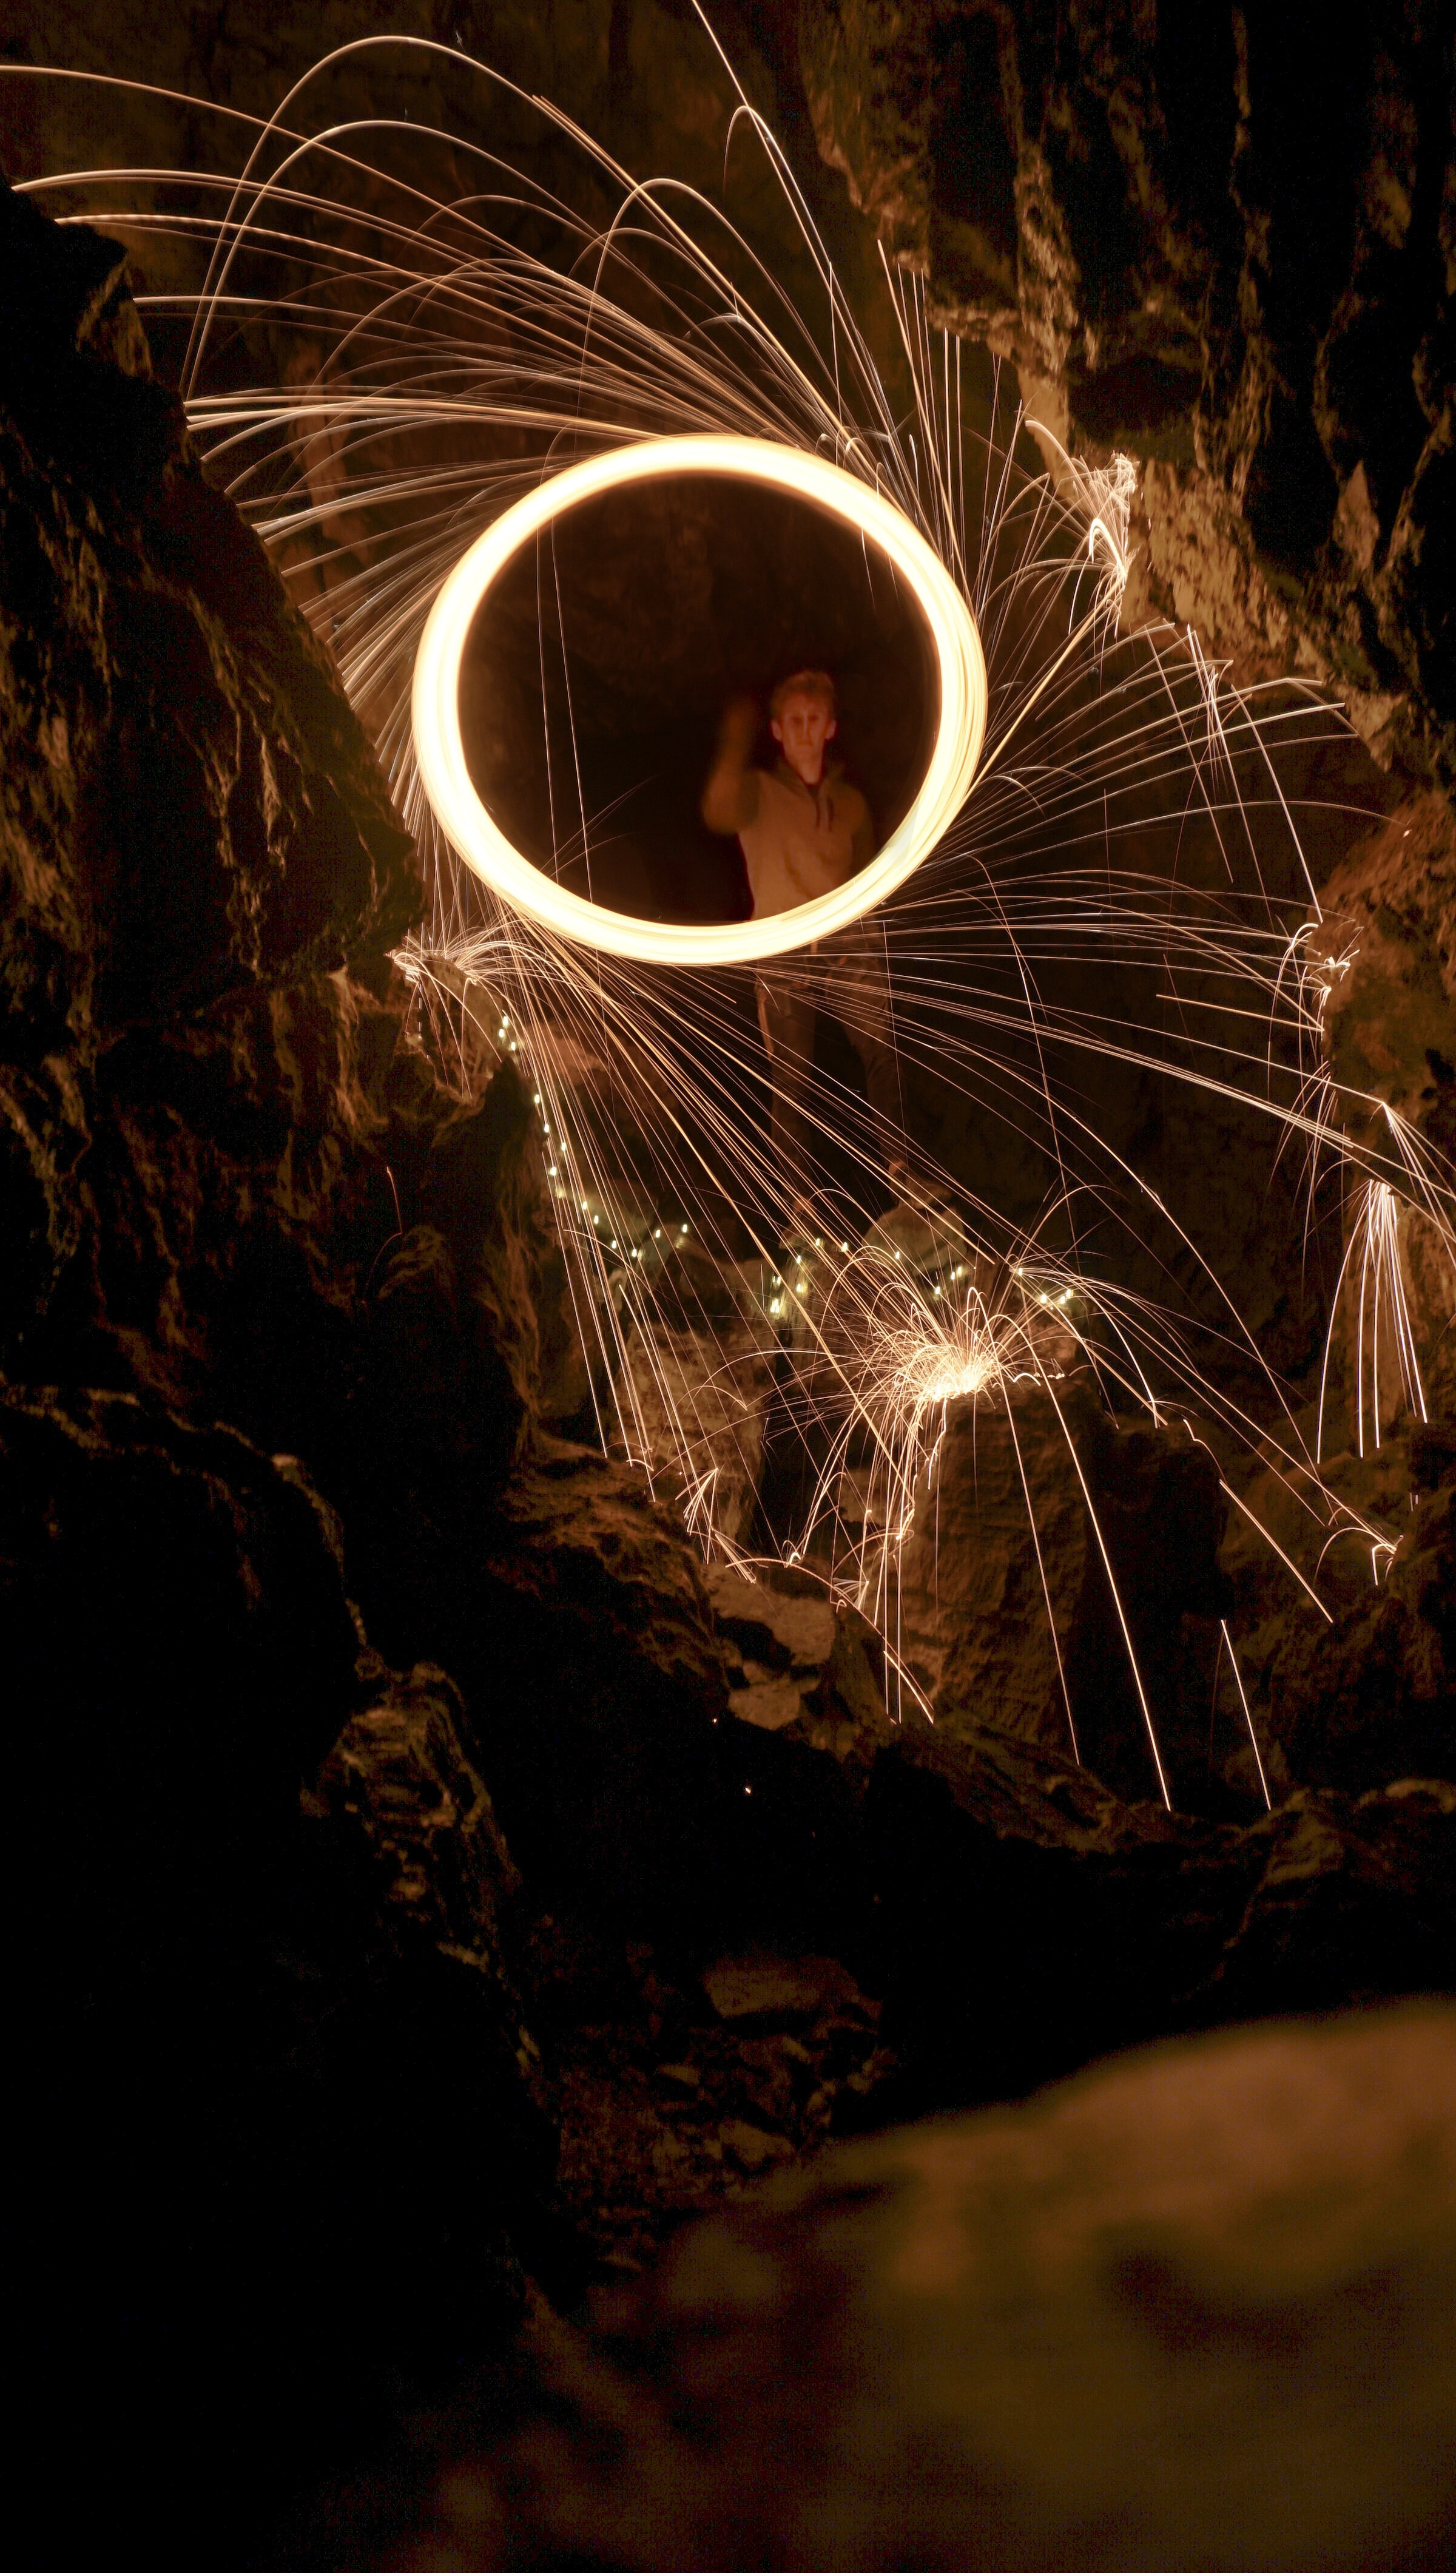 steel-wool photography of person